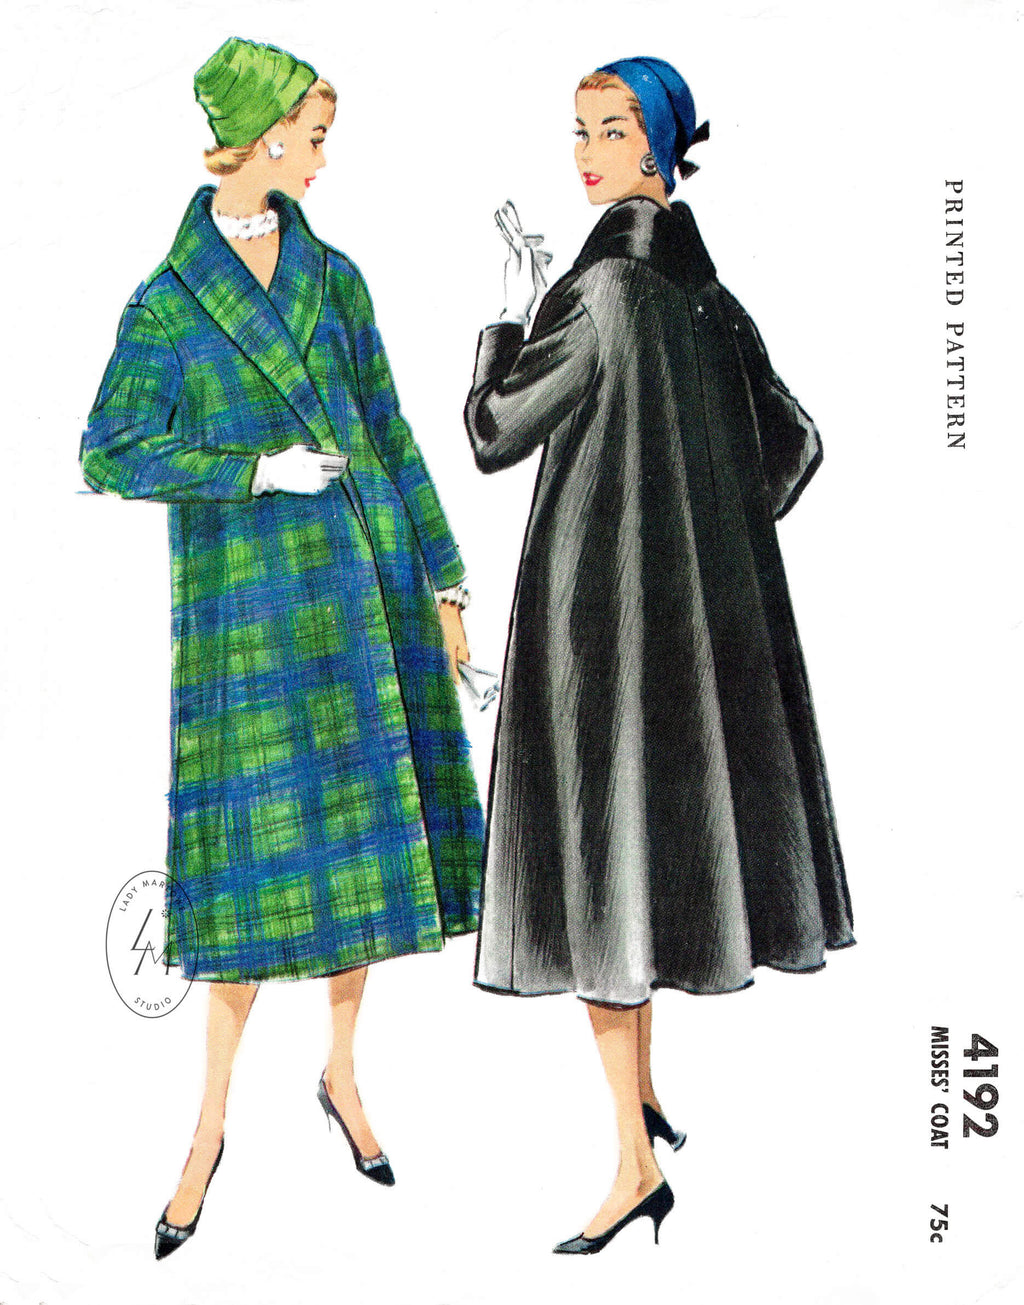 McCall's 4192 1950s swing coat with shawl collar vintage sewing pattern reproduction